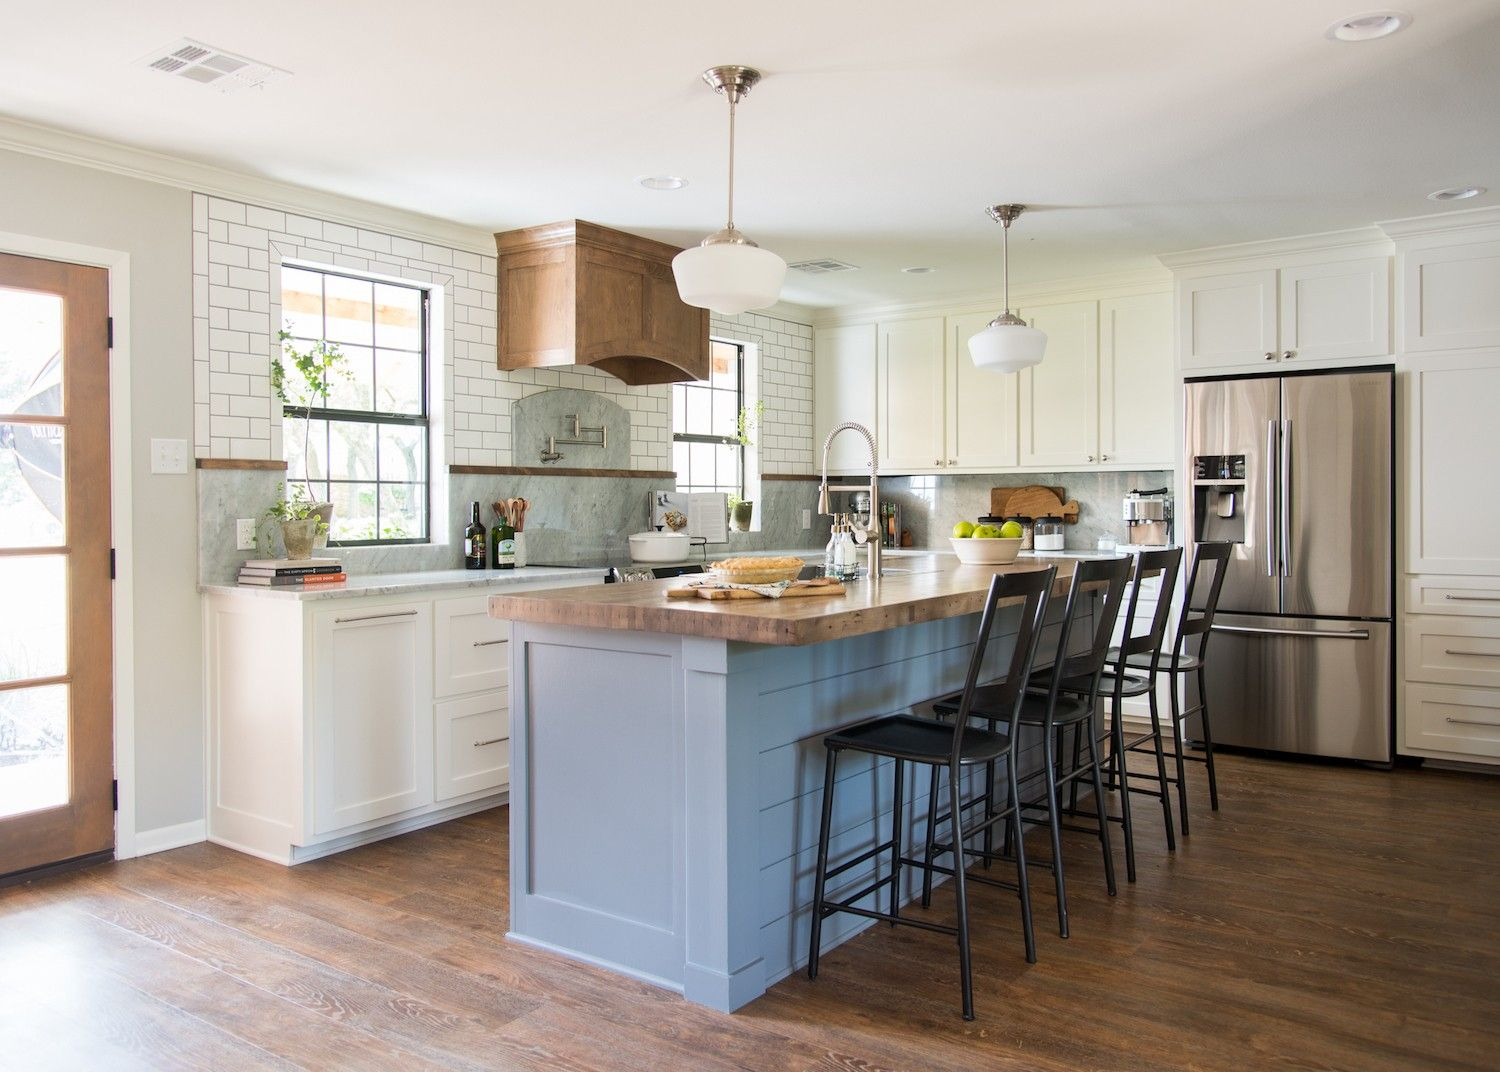 Fixer upper kitchens season 4 - Episode 11 The Prickly Pear House Fixer Upper Kitchenchip